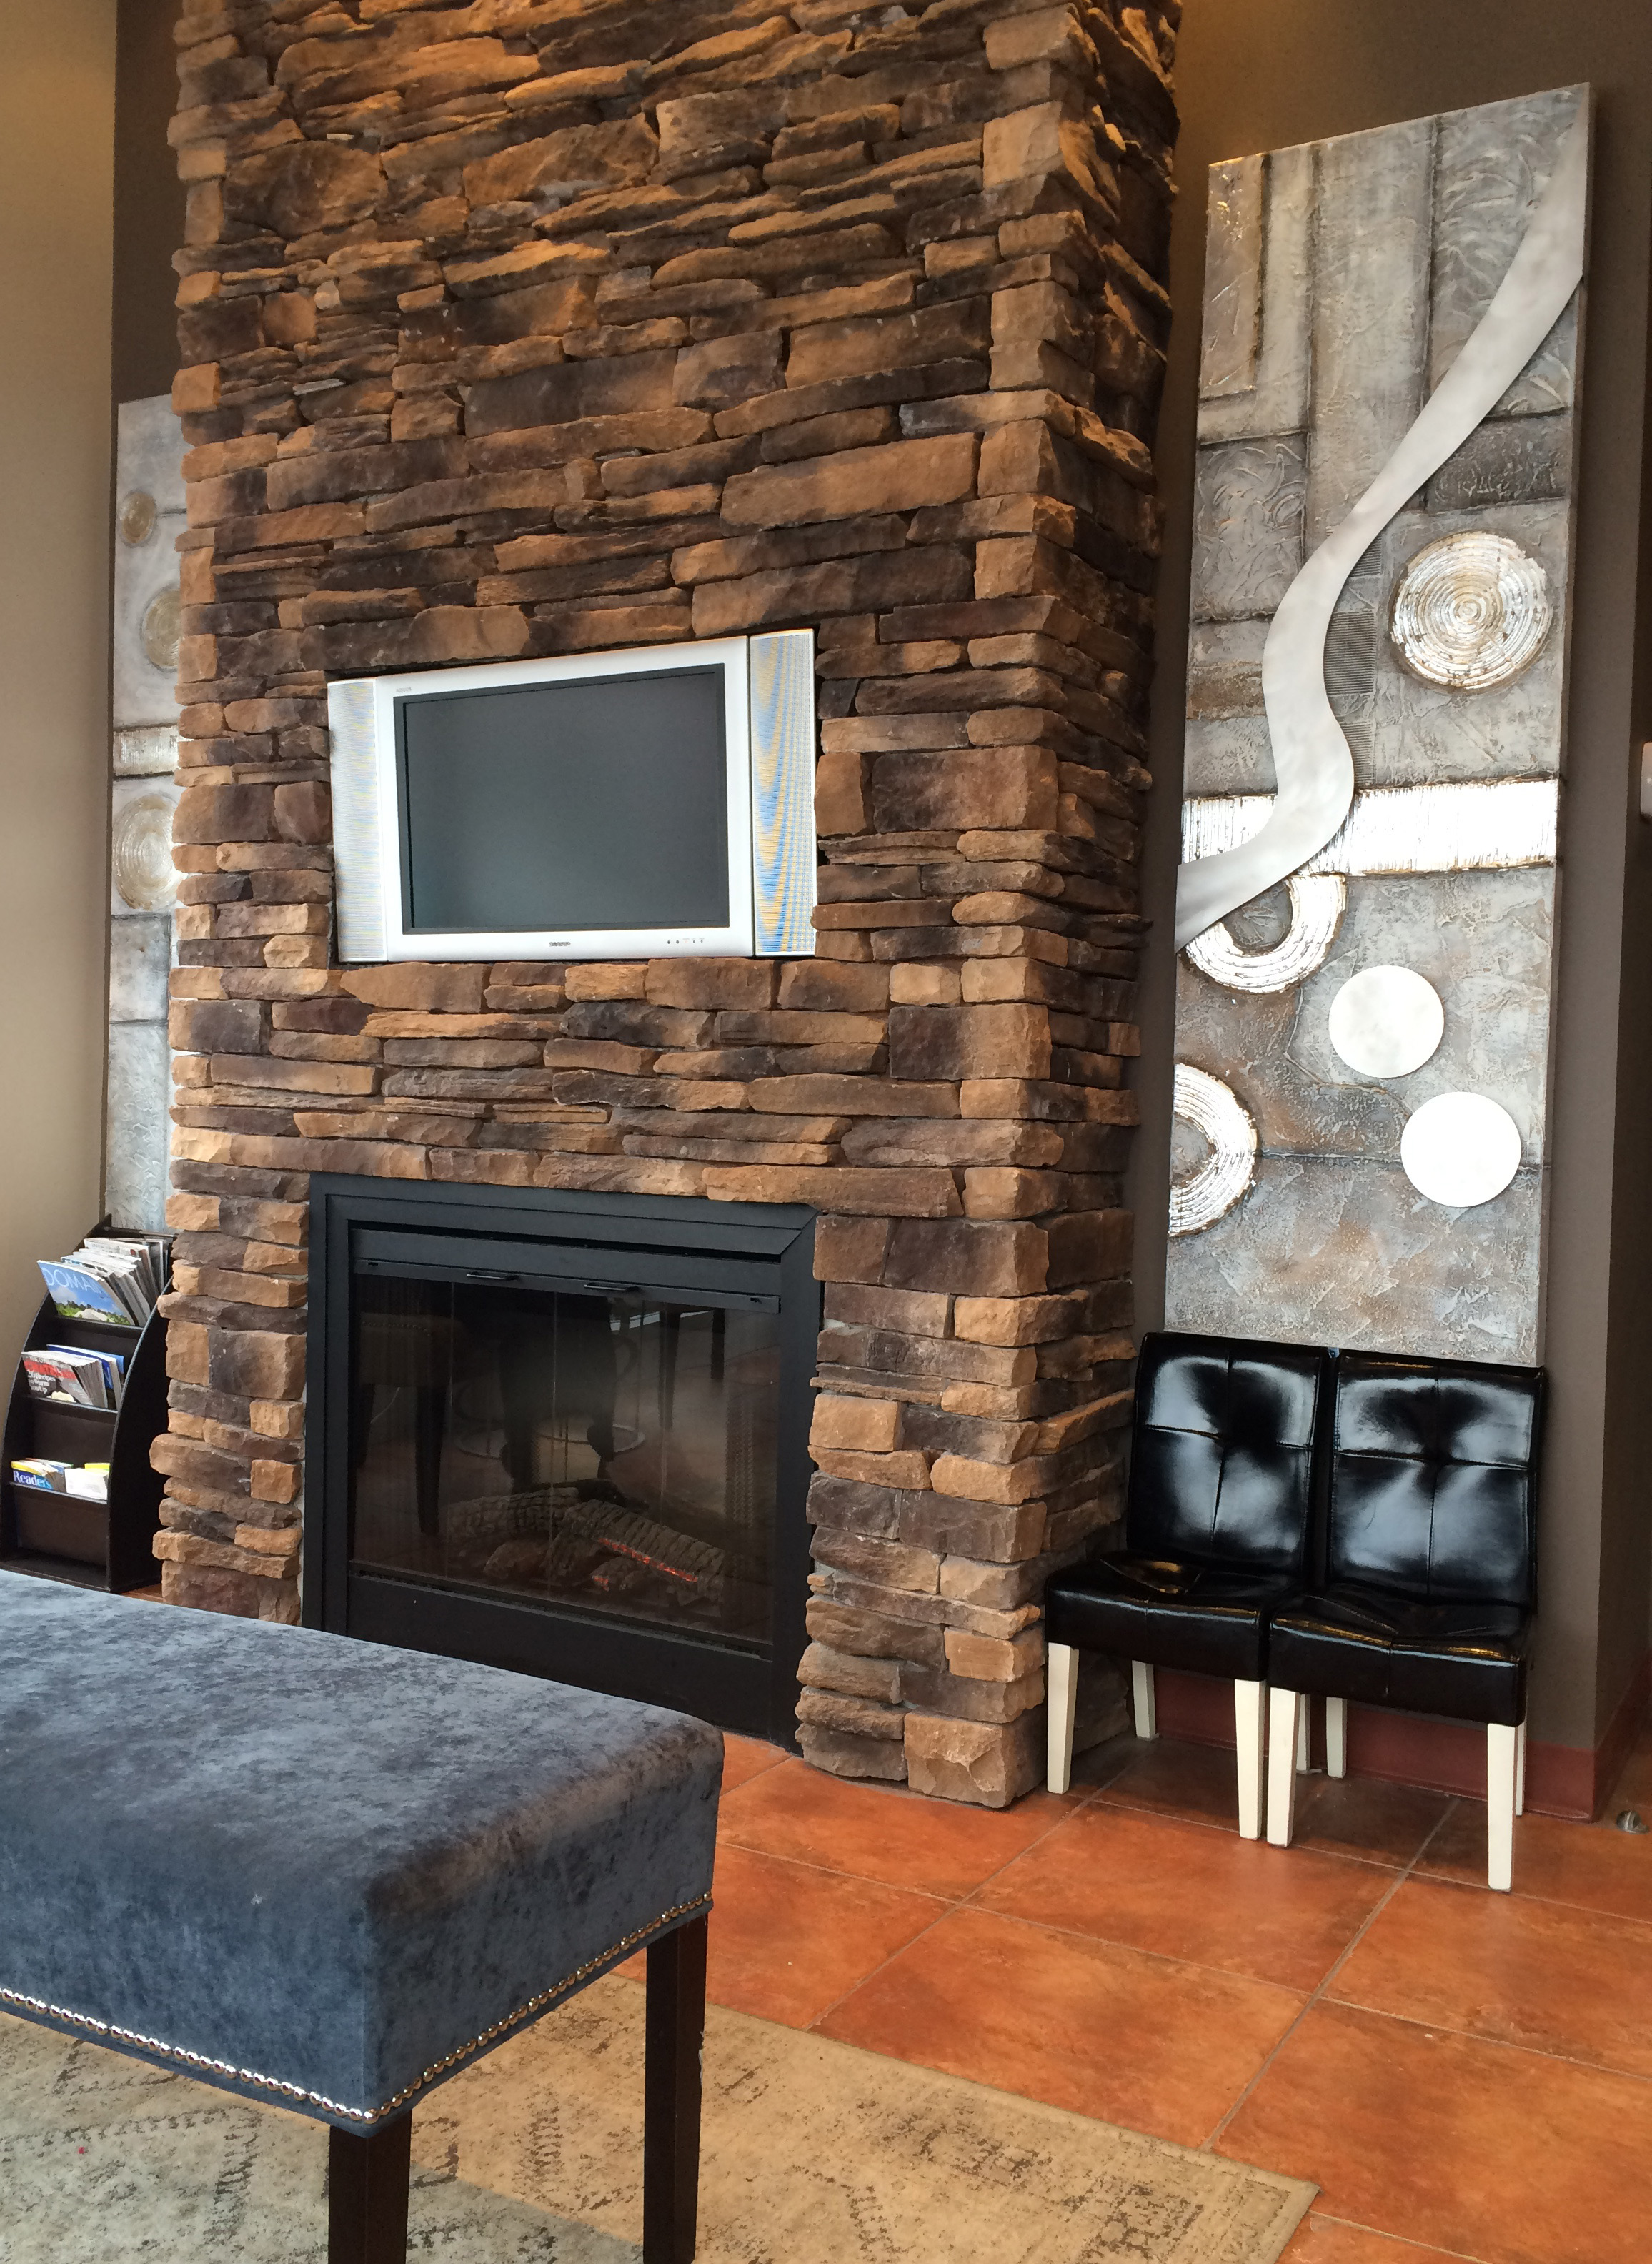 Clinic - Waiting Room with stone fireplace